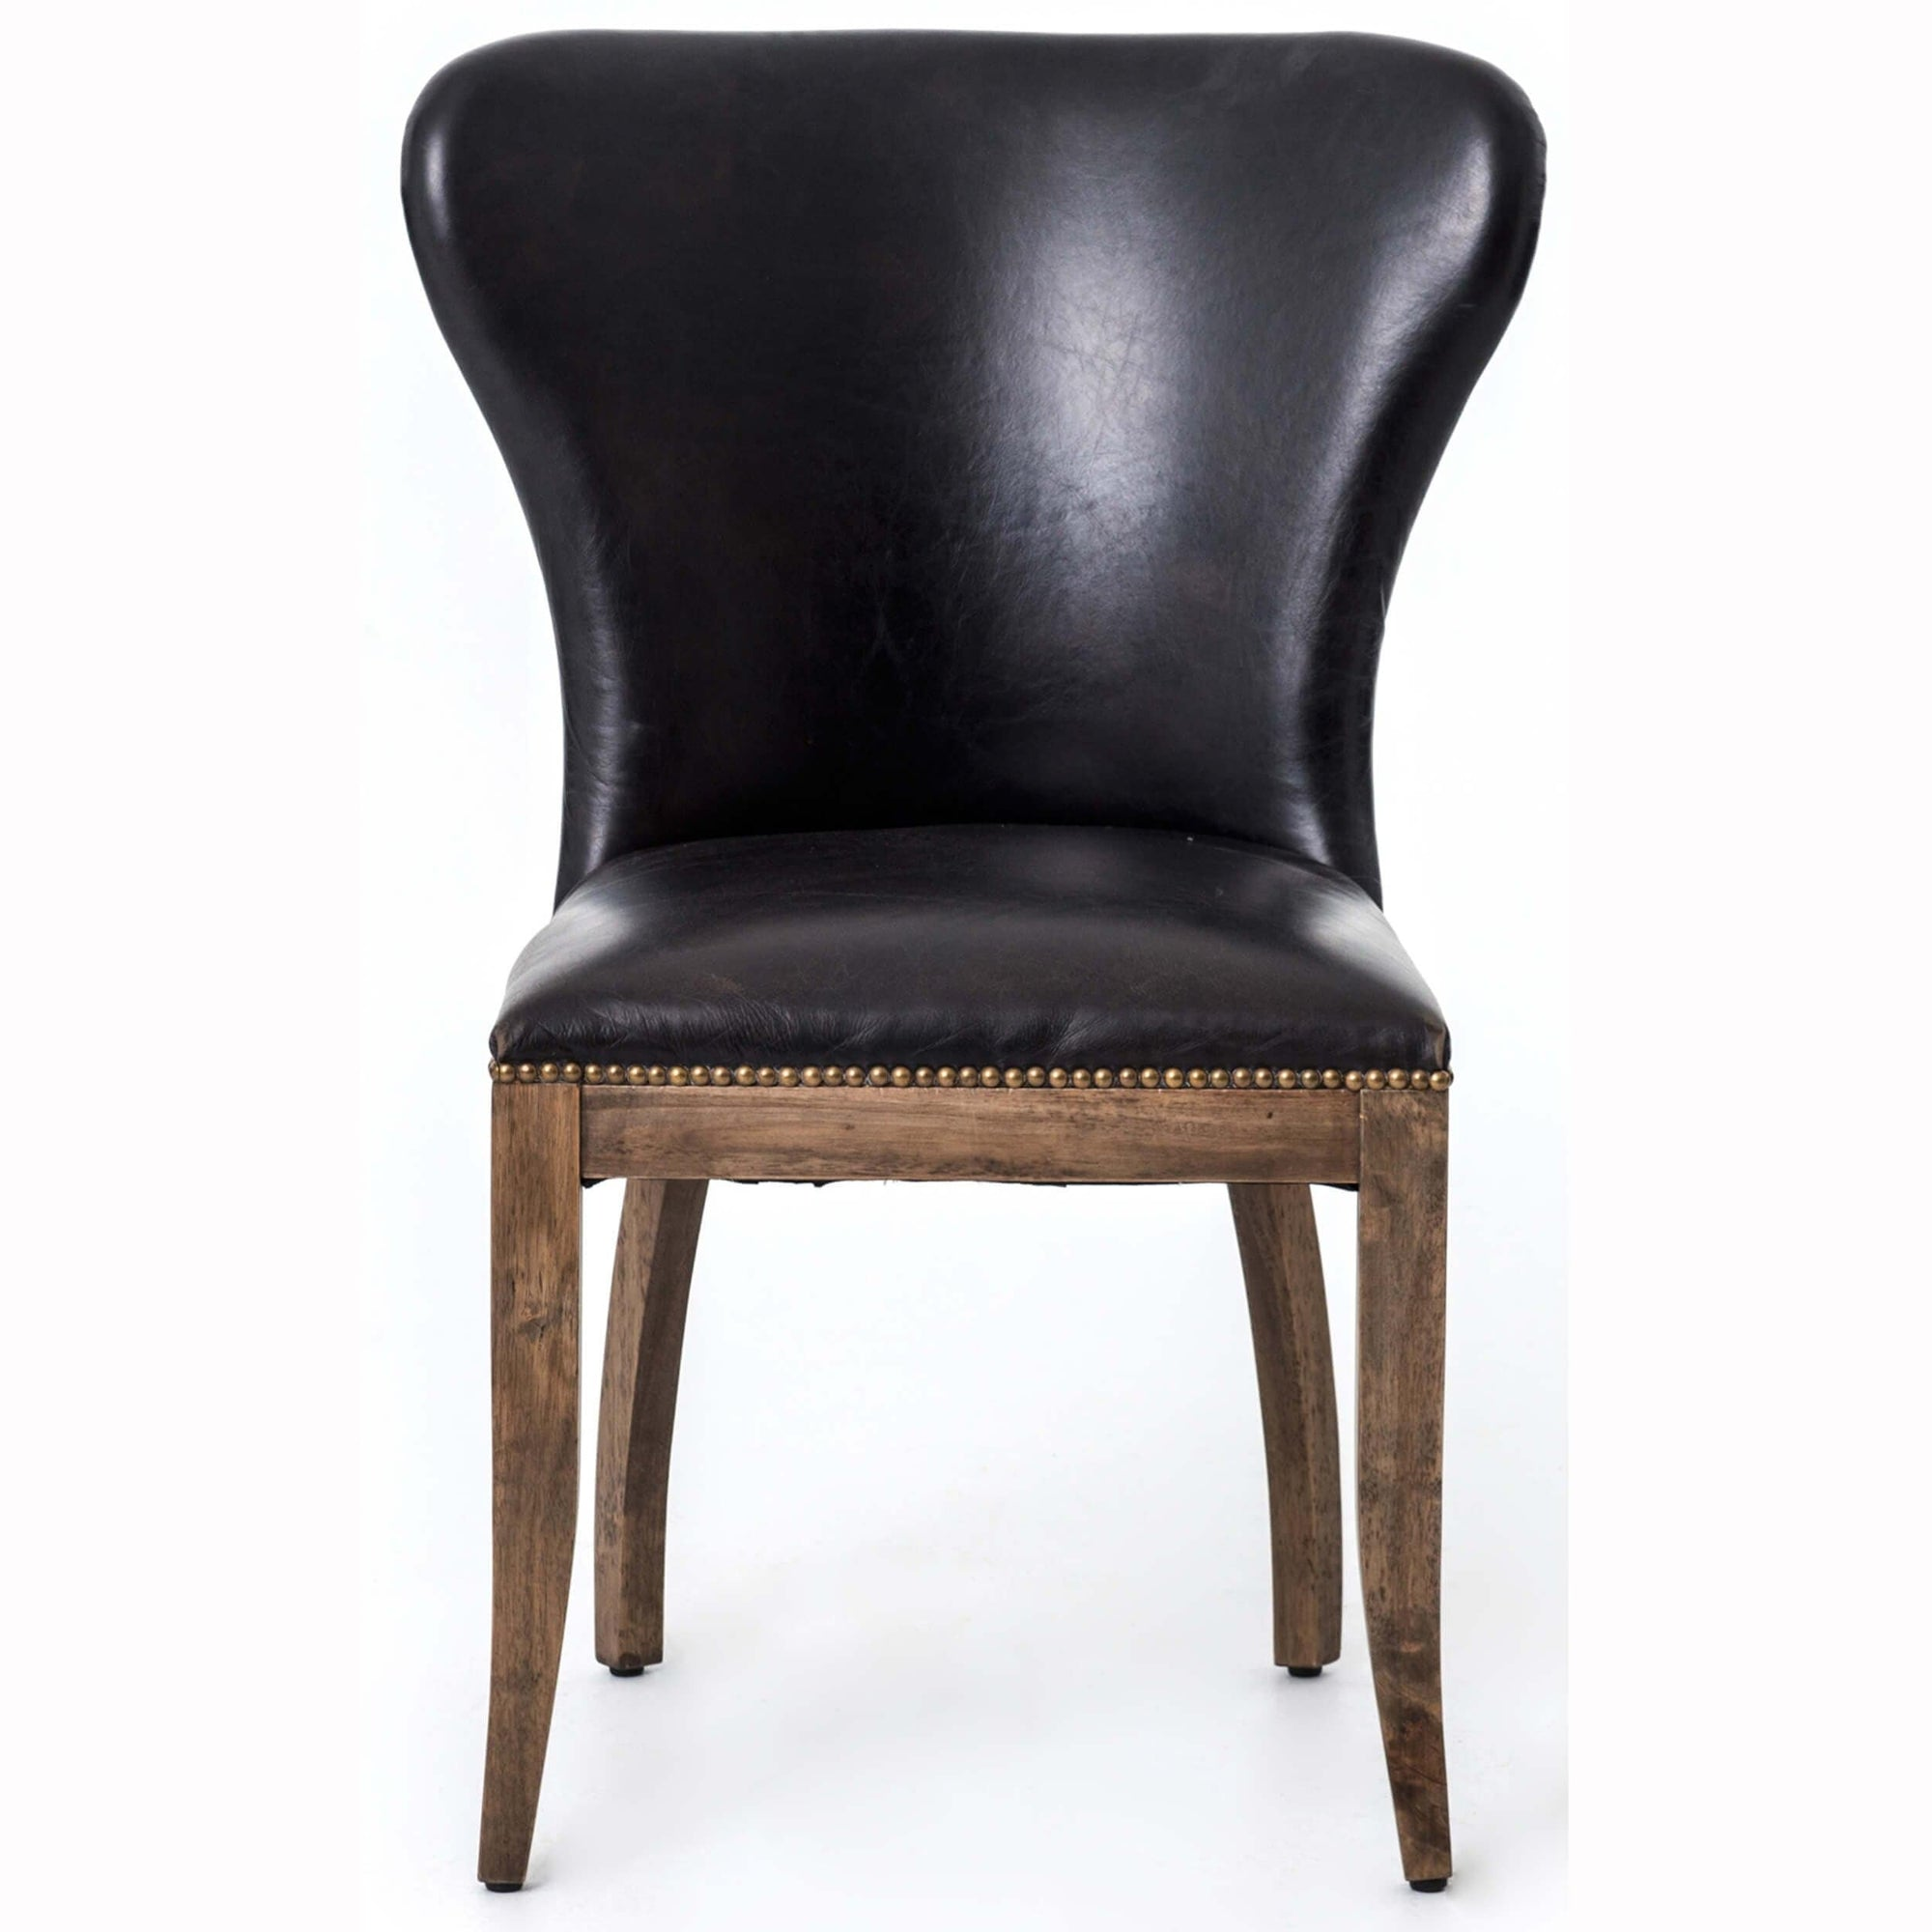 Brilliant Richmond Leather Dining Chair Old Saddle Black High Ibusinesslaw Wood Chair Design Ideas Ibusinesslaworg